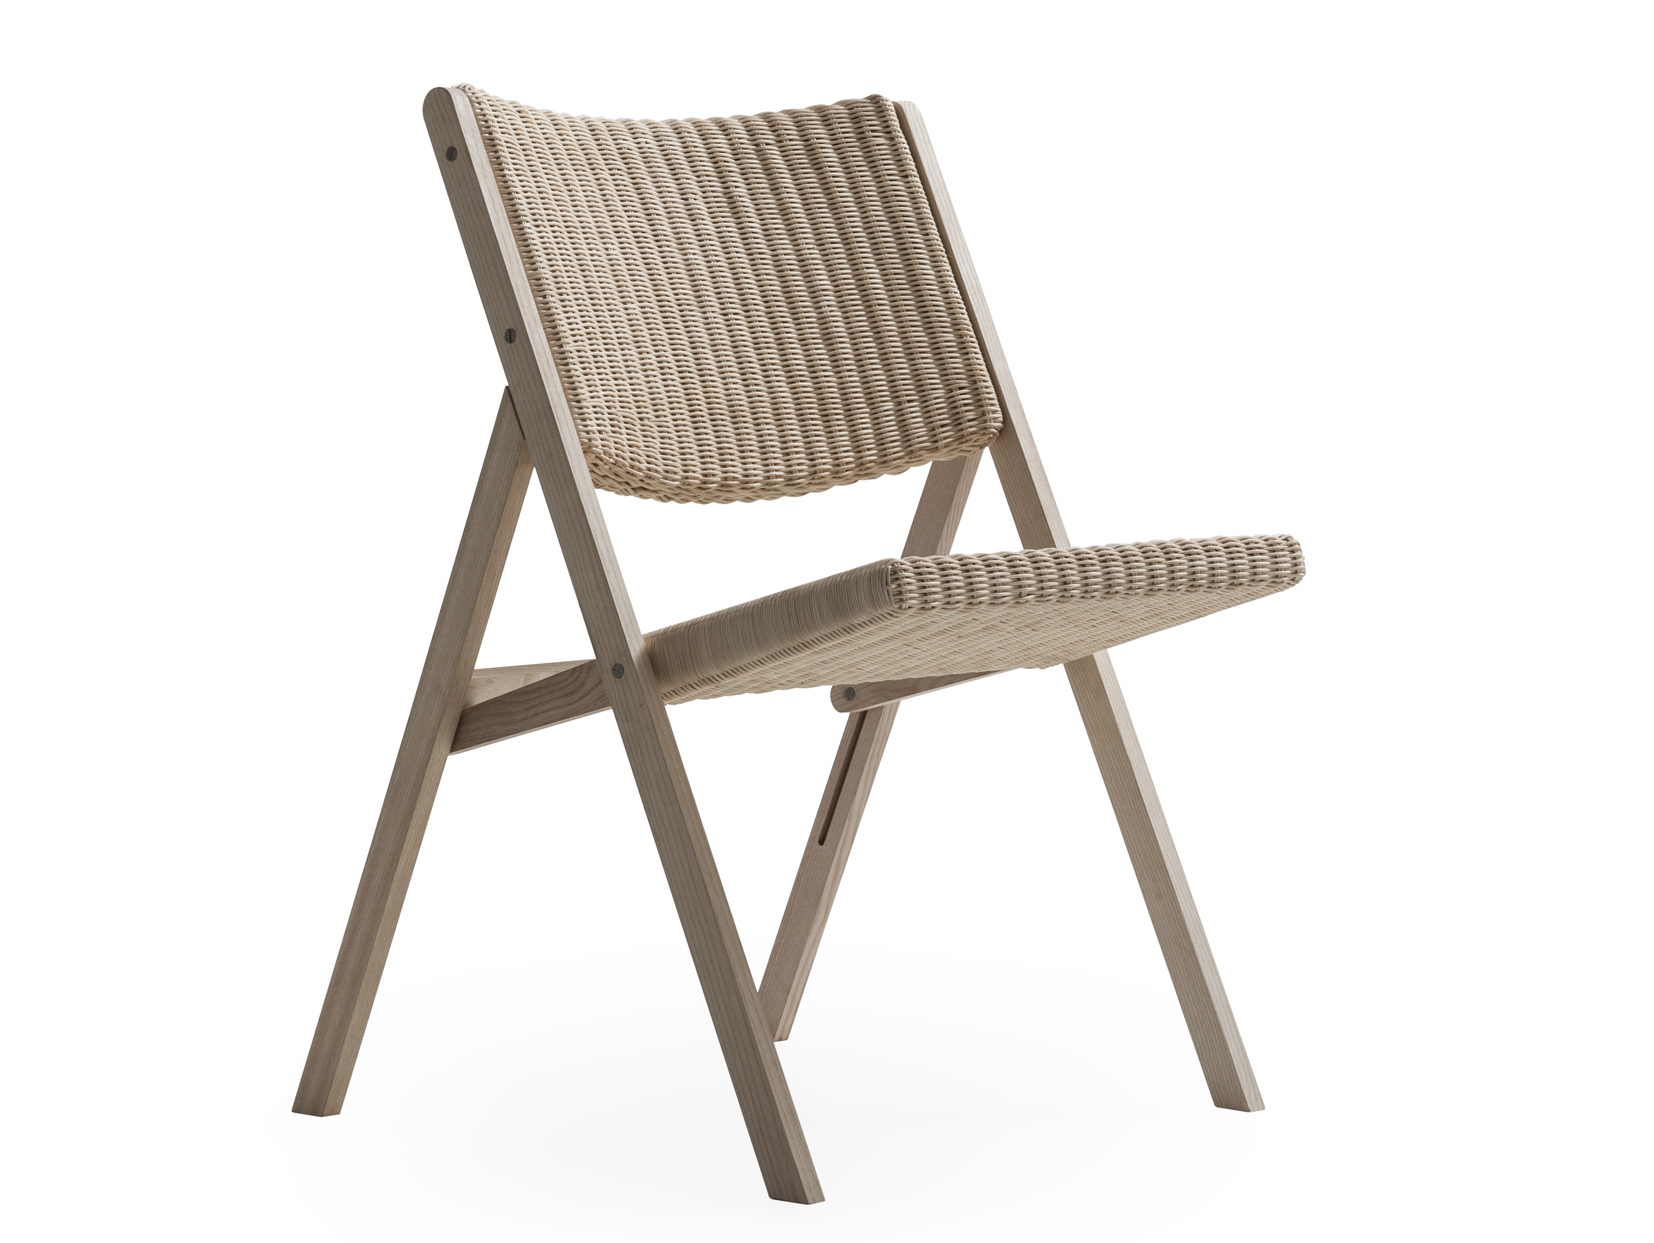 D 270 1 Woven wicker chair by MOLTENI & C design Gio Ponti